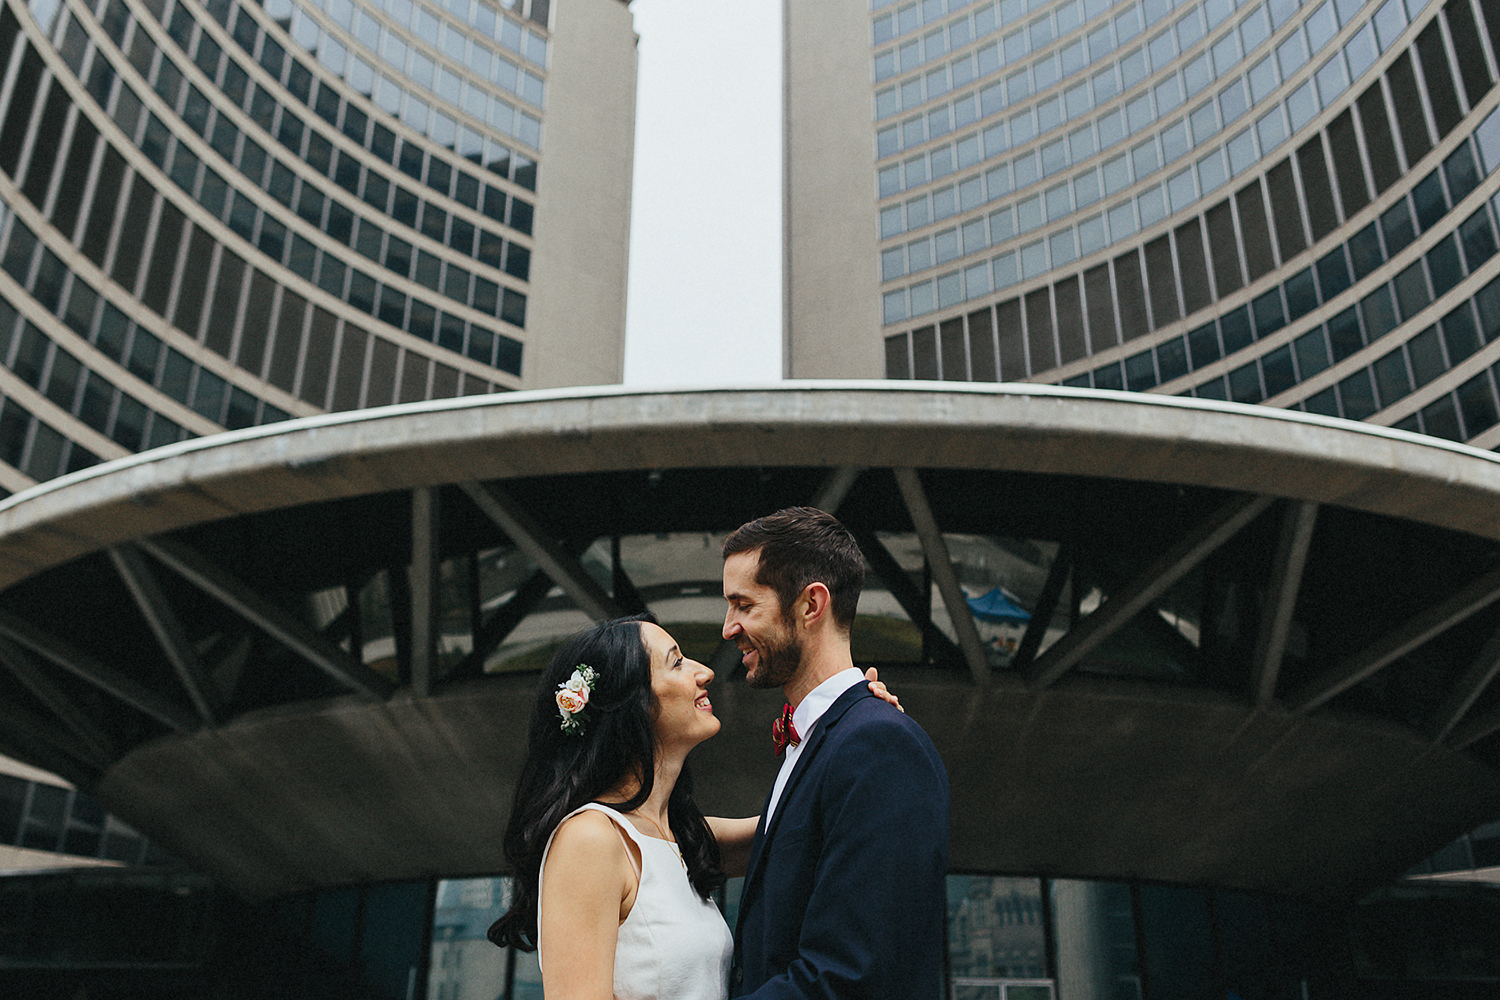 59-382-Toronto City Hall Elopement Alernative Bride and Groom Editorial Style31.JPG